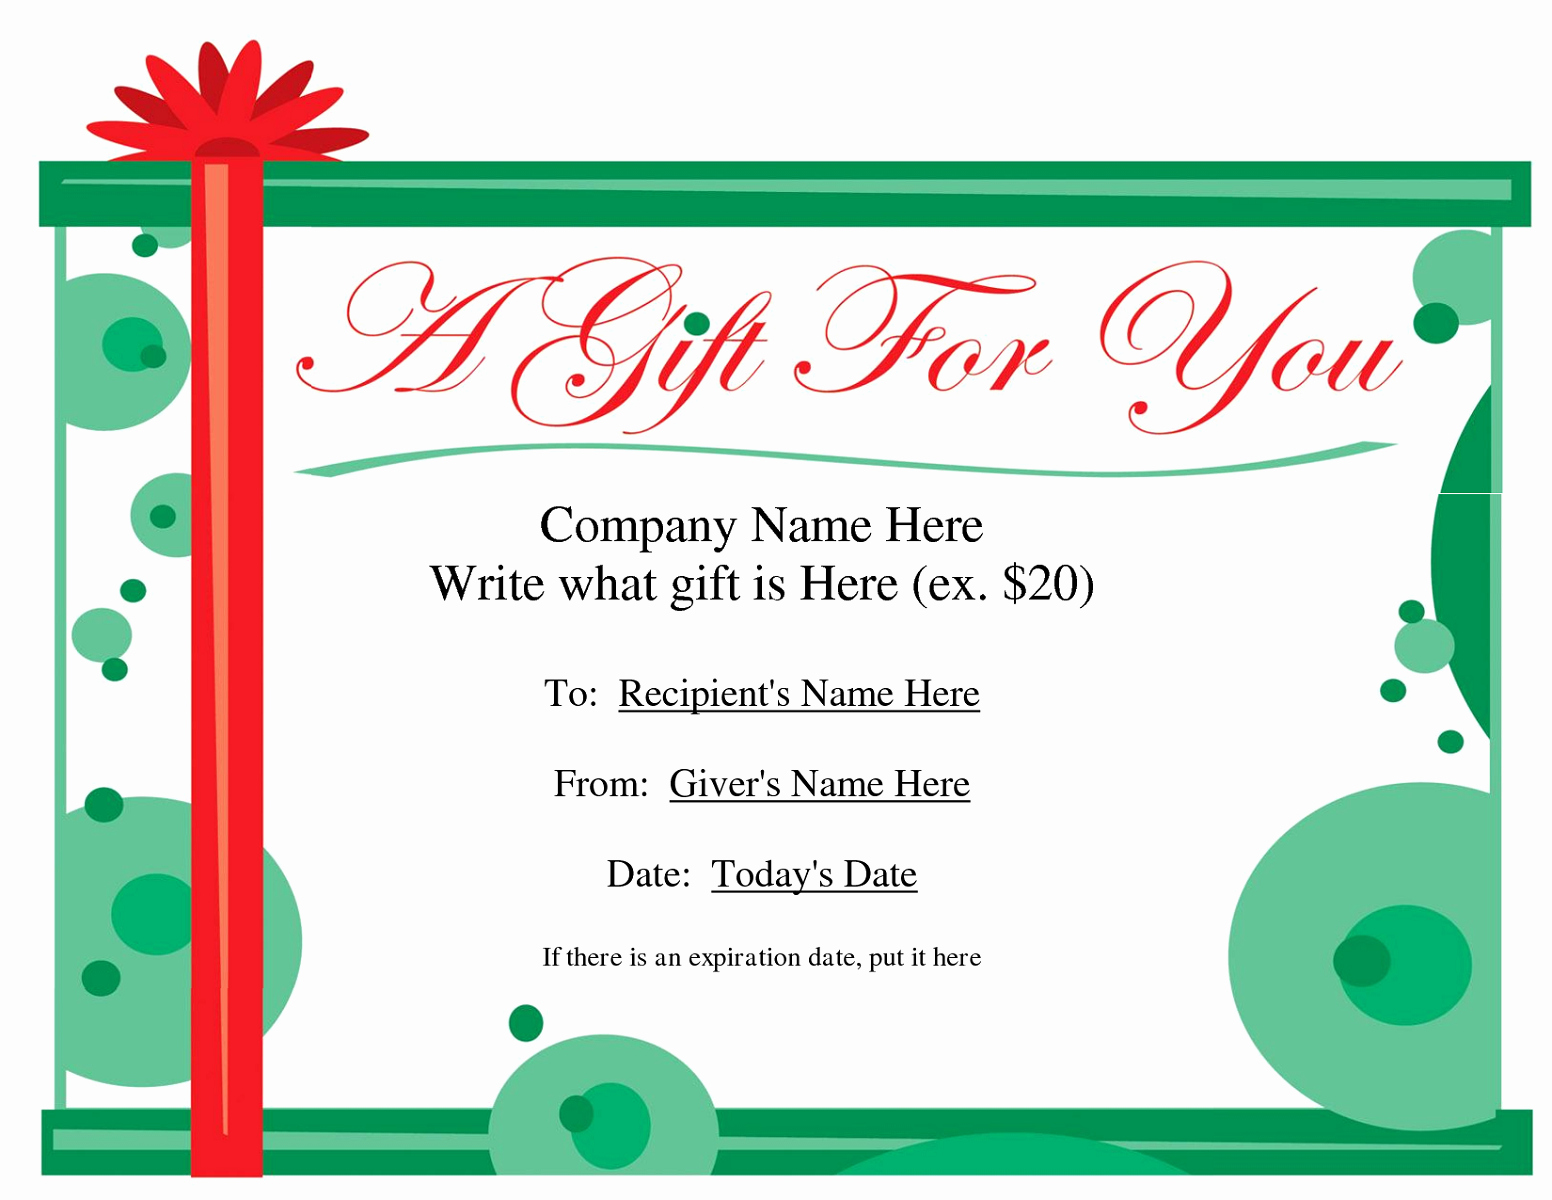 Homemade Gift Certificate Templates Free Awesome Gift Certificate Templates to Print